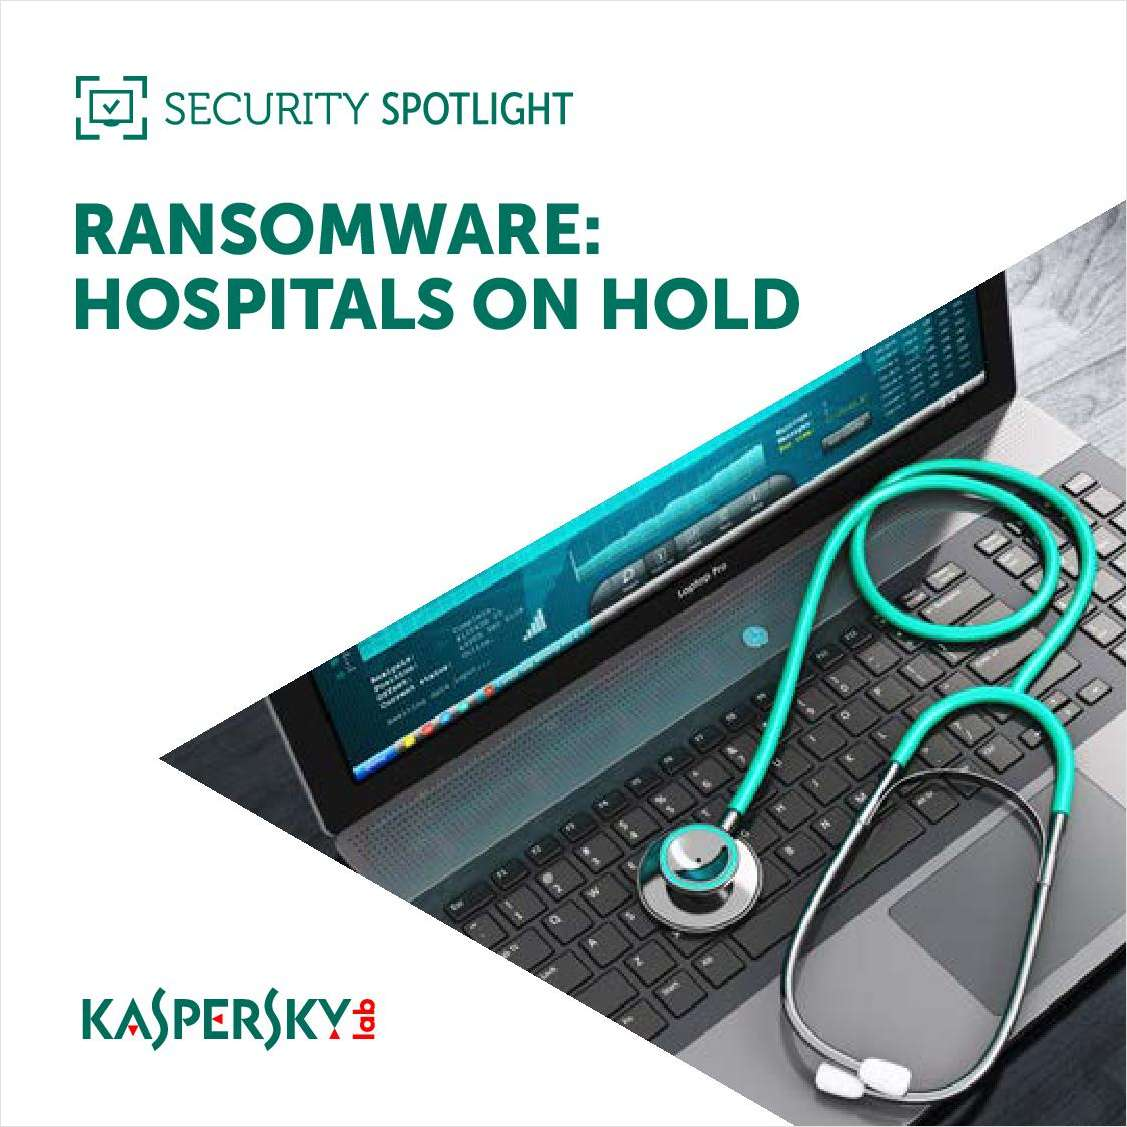 Healthcare Ransomware